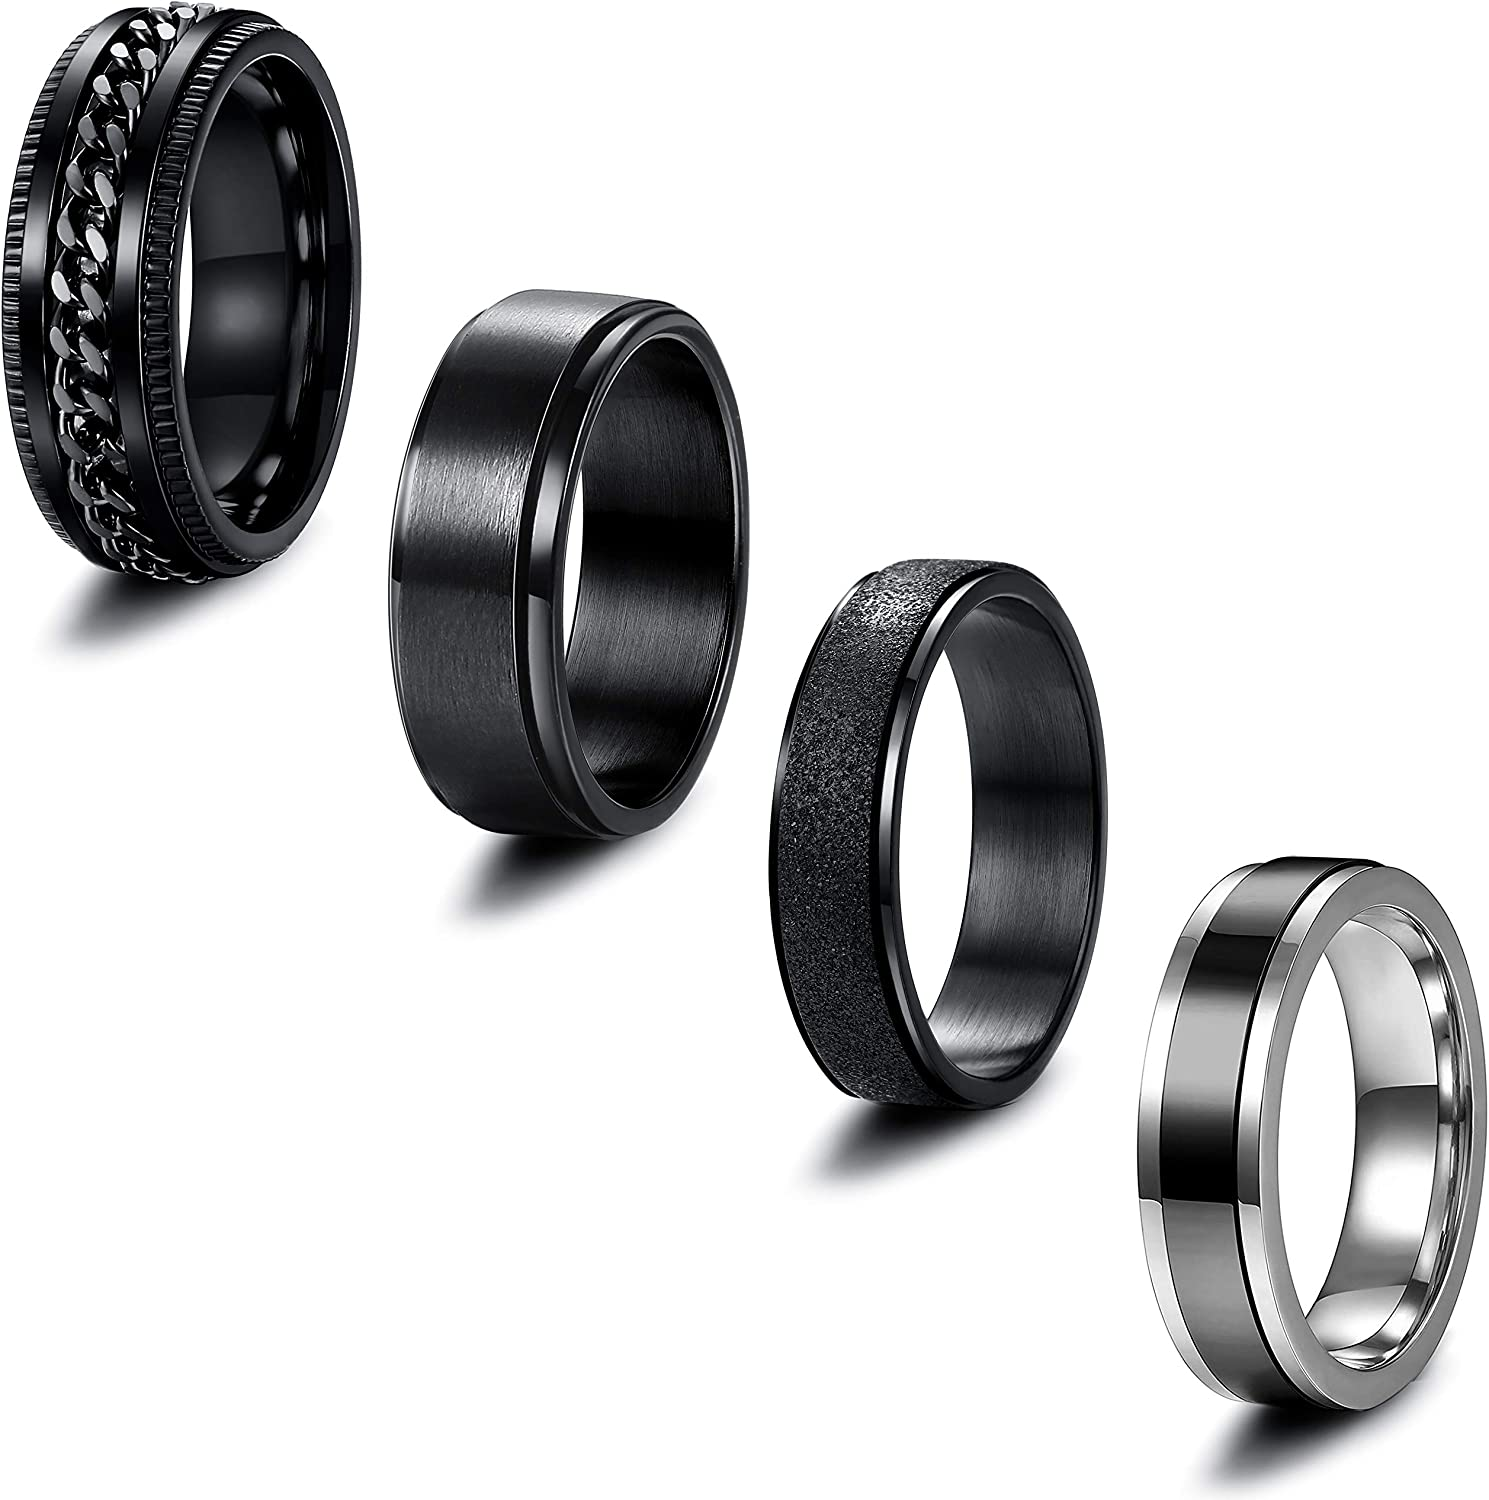 EIELO 4 Pieces Band Rings for Men Women Stainless Steel Cool Chain Inlaid Fidget Spinner Ring Black Silver Anxiety Wedding Pormise Ring Set